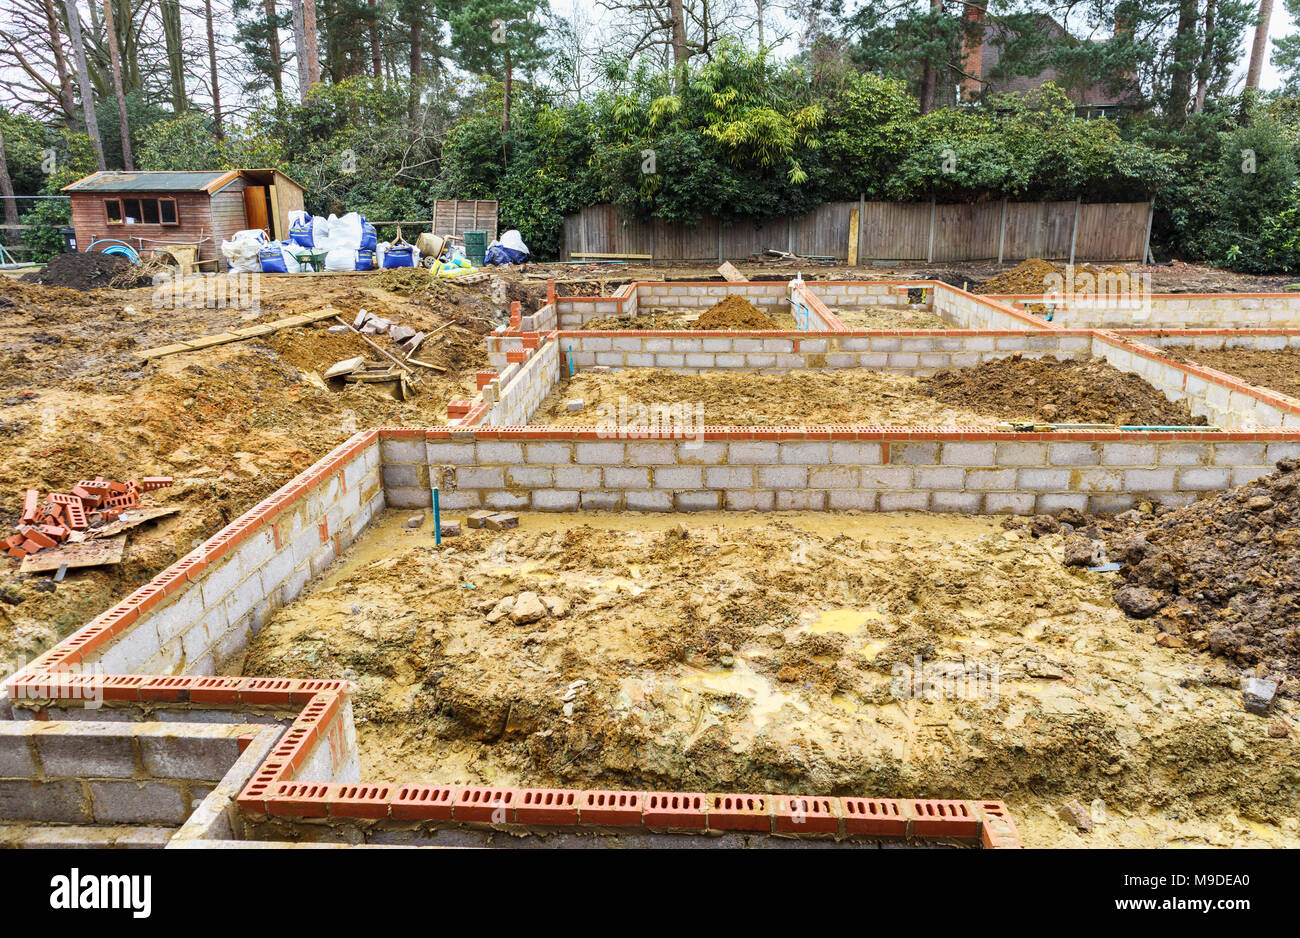 Great Brick And Breeze Block Foundations For A New House On A Construction Site  For A New